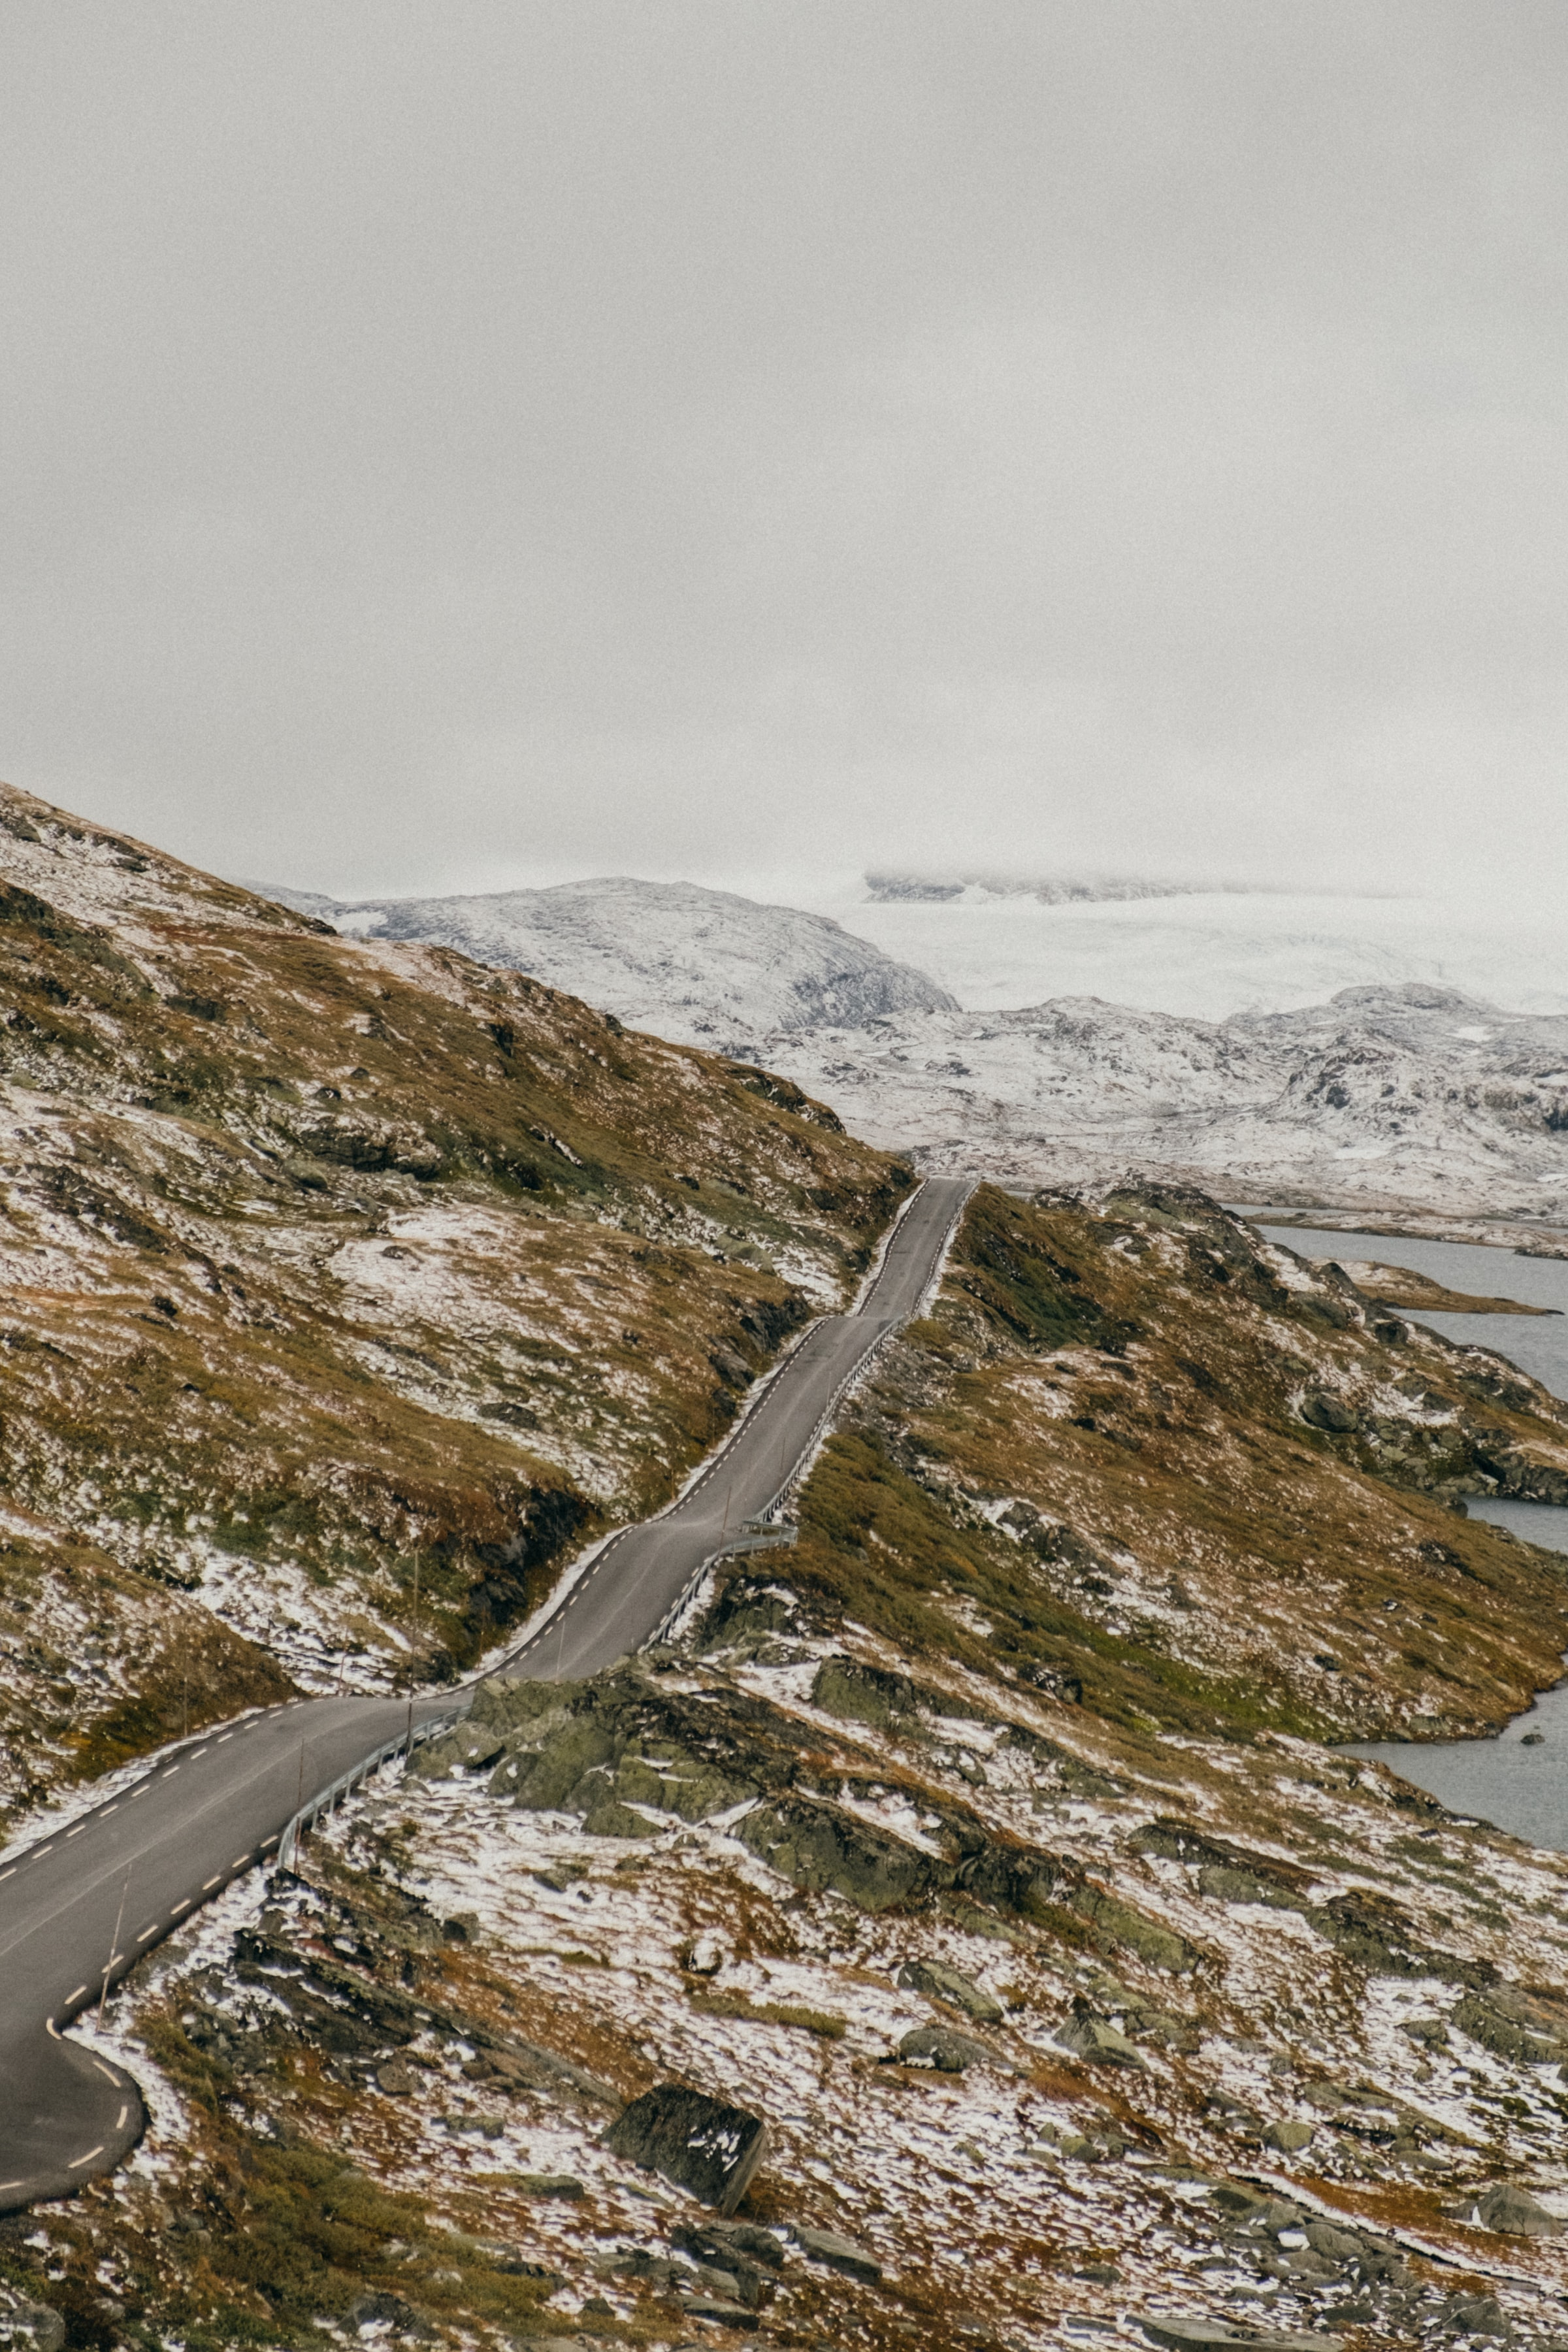 148404 download wallpaper Nature, Road, Dahl, Distance, Rocks, Snow, Snow Covered, Snowbound screensavers and pictures for free